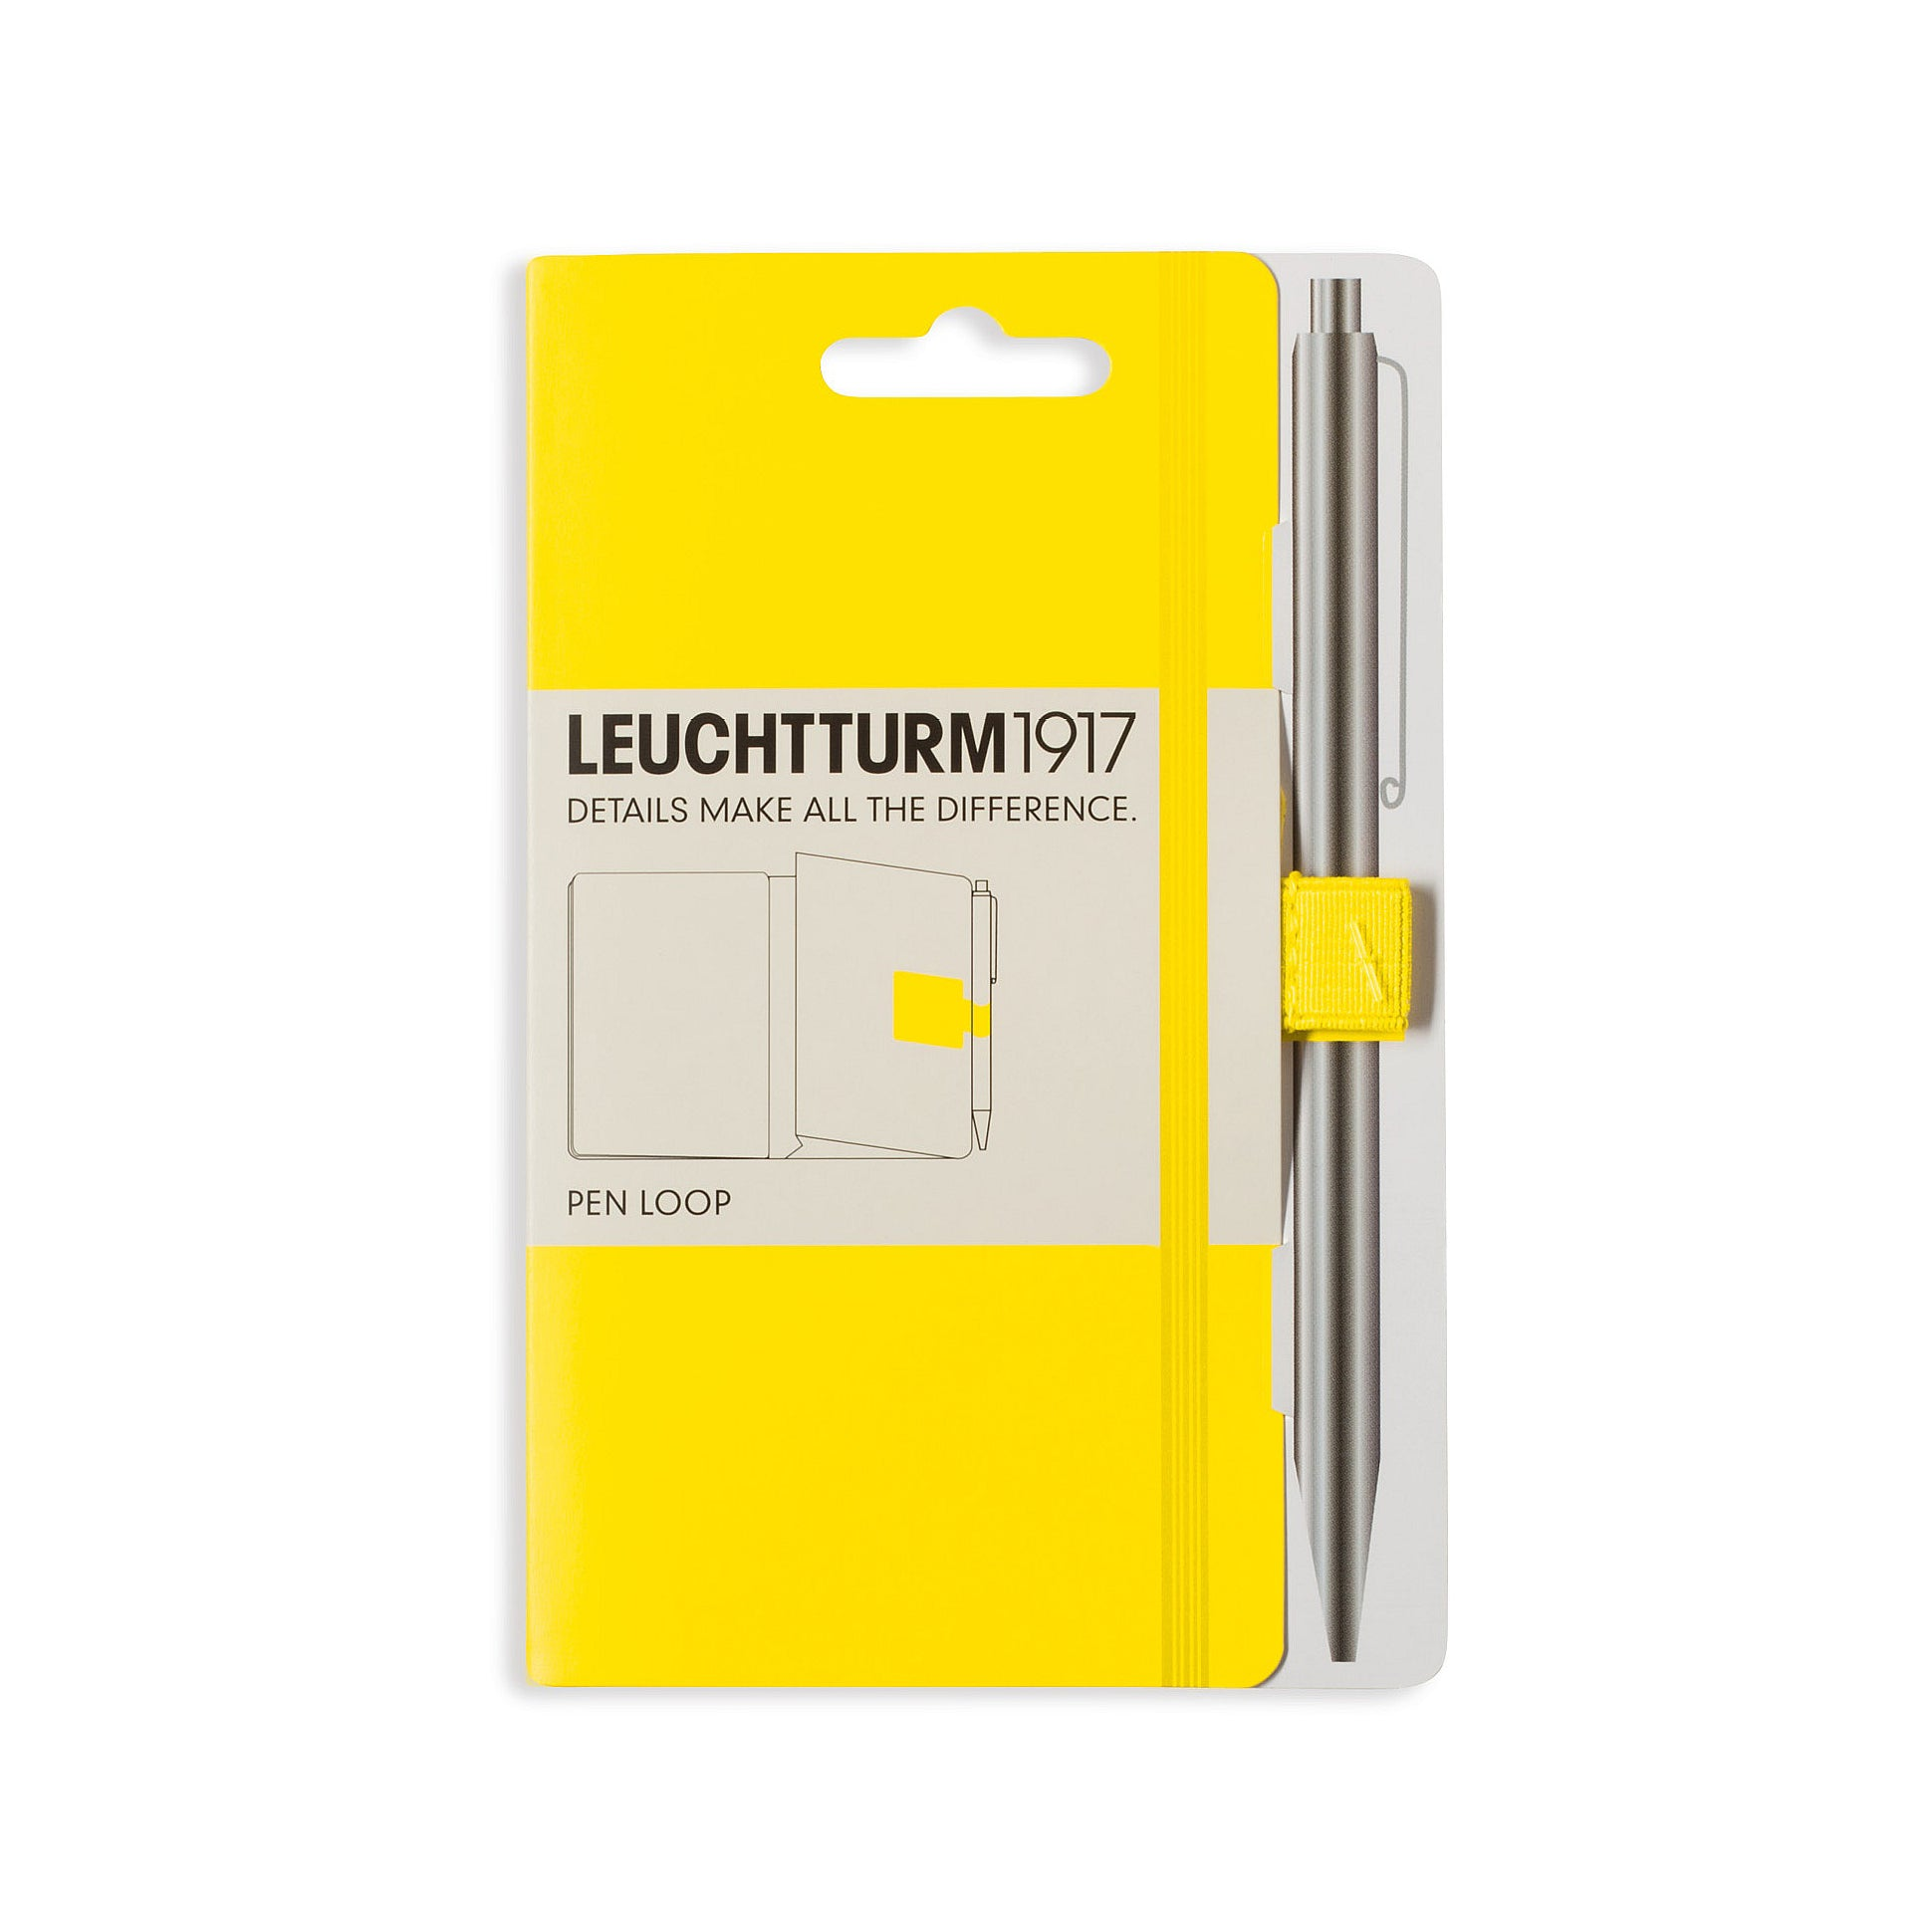 leuchtturm lemon pen loop